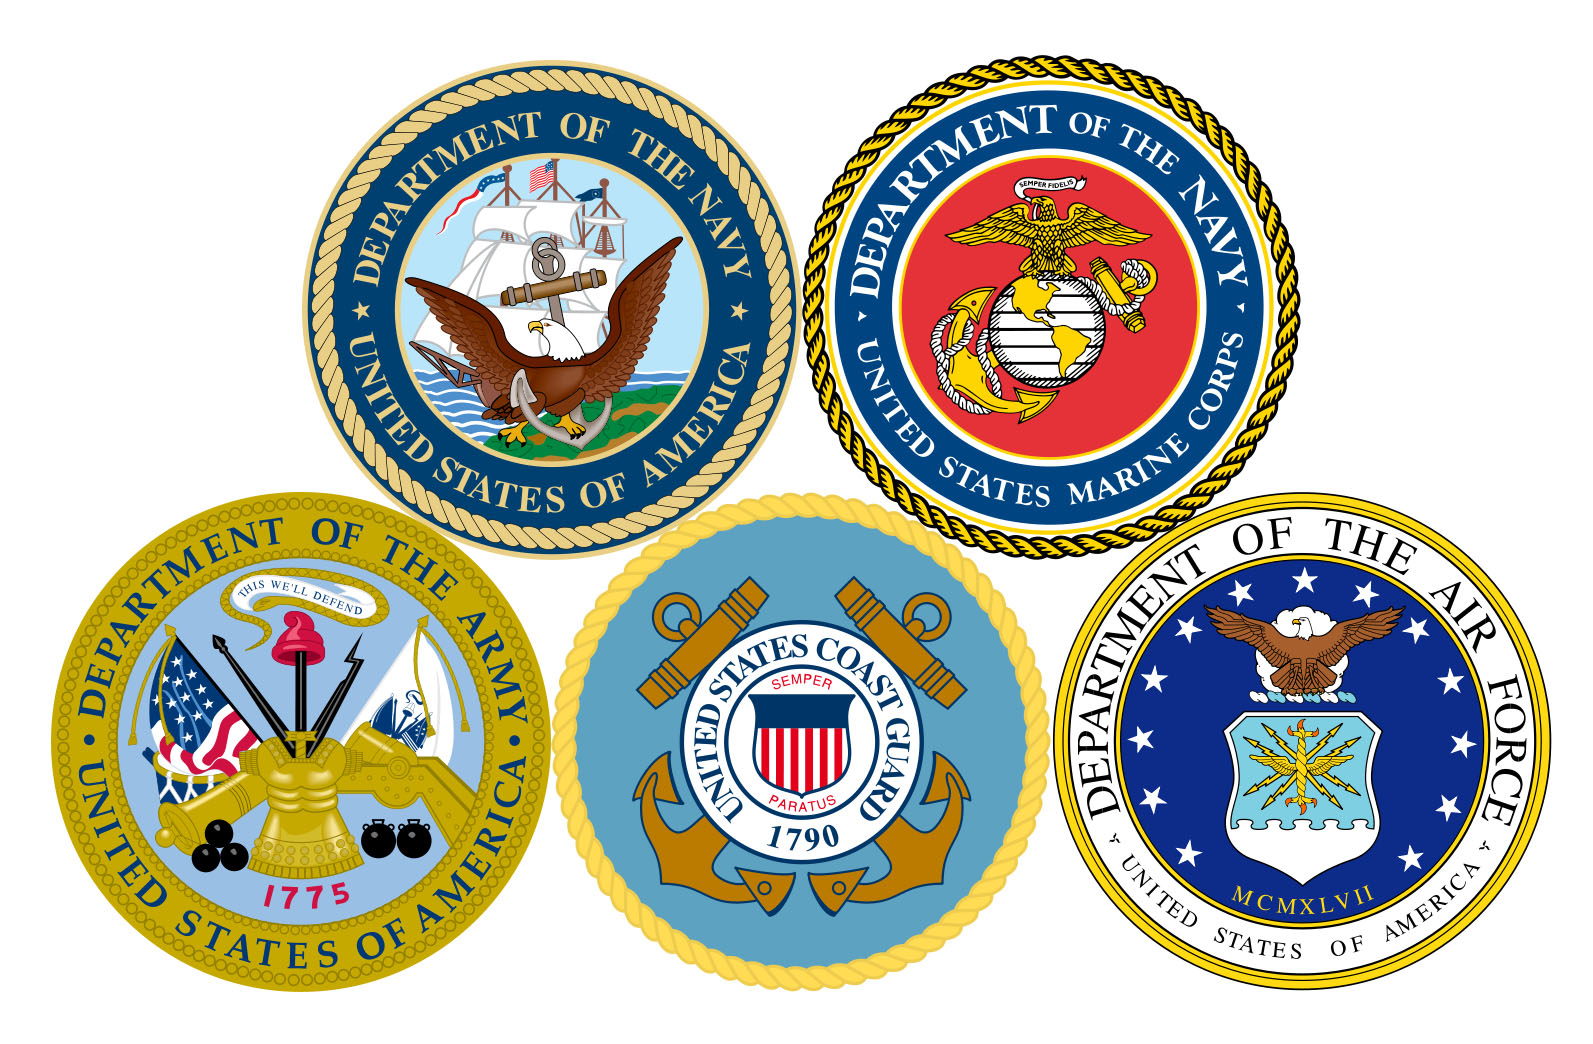 The five seals of the military